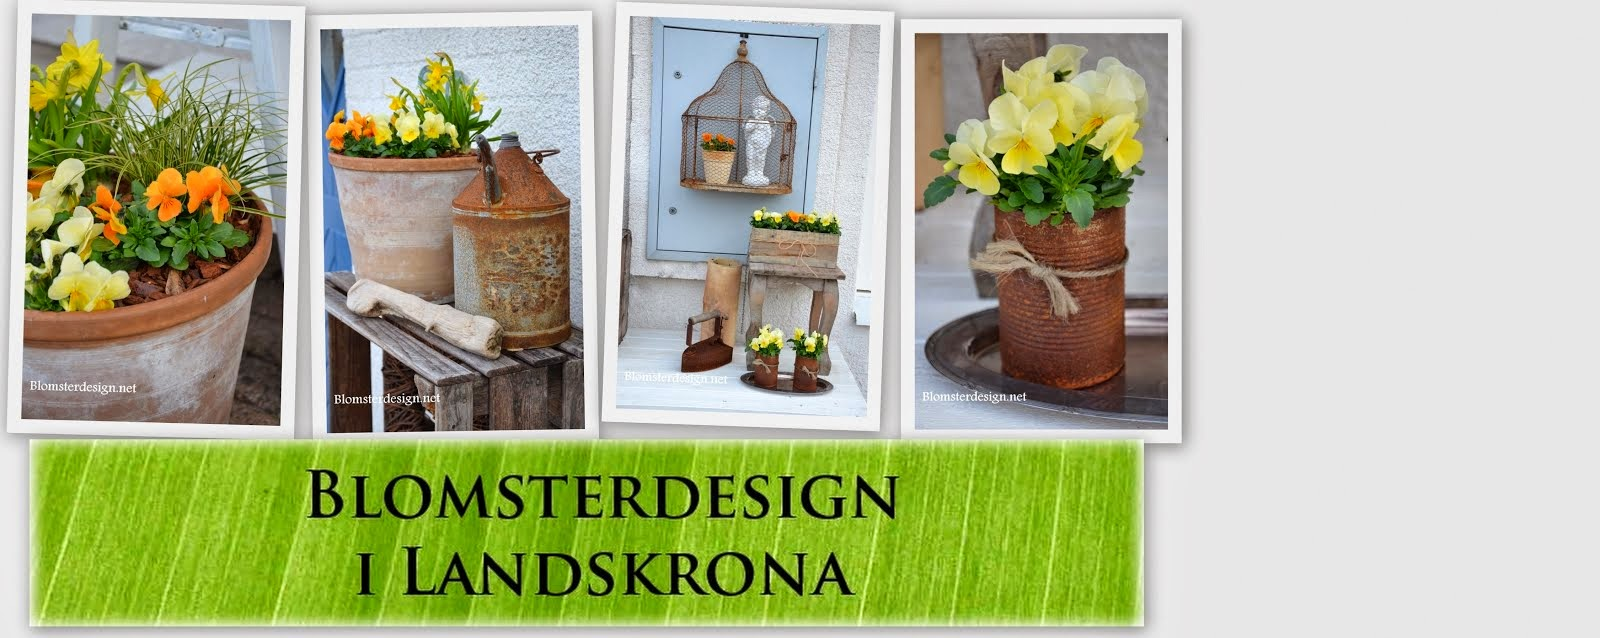 BLOMSTERDESIGN.NET